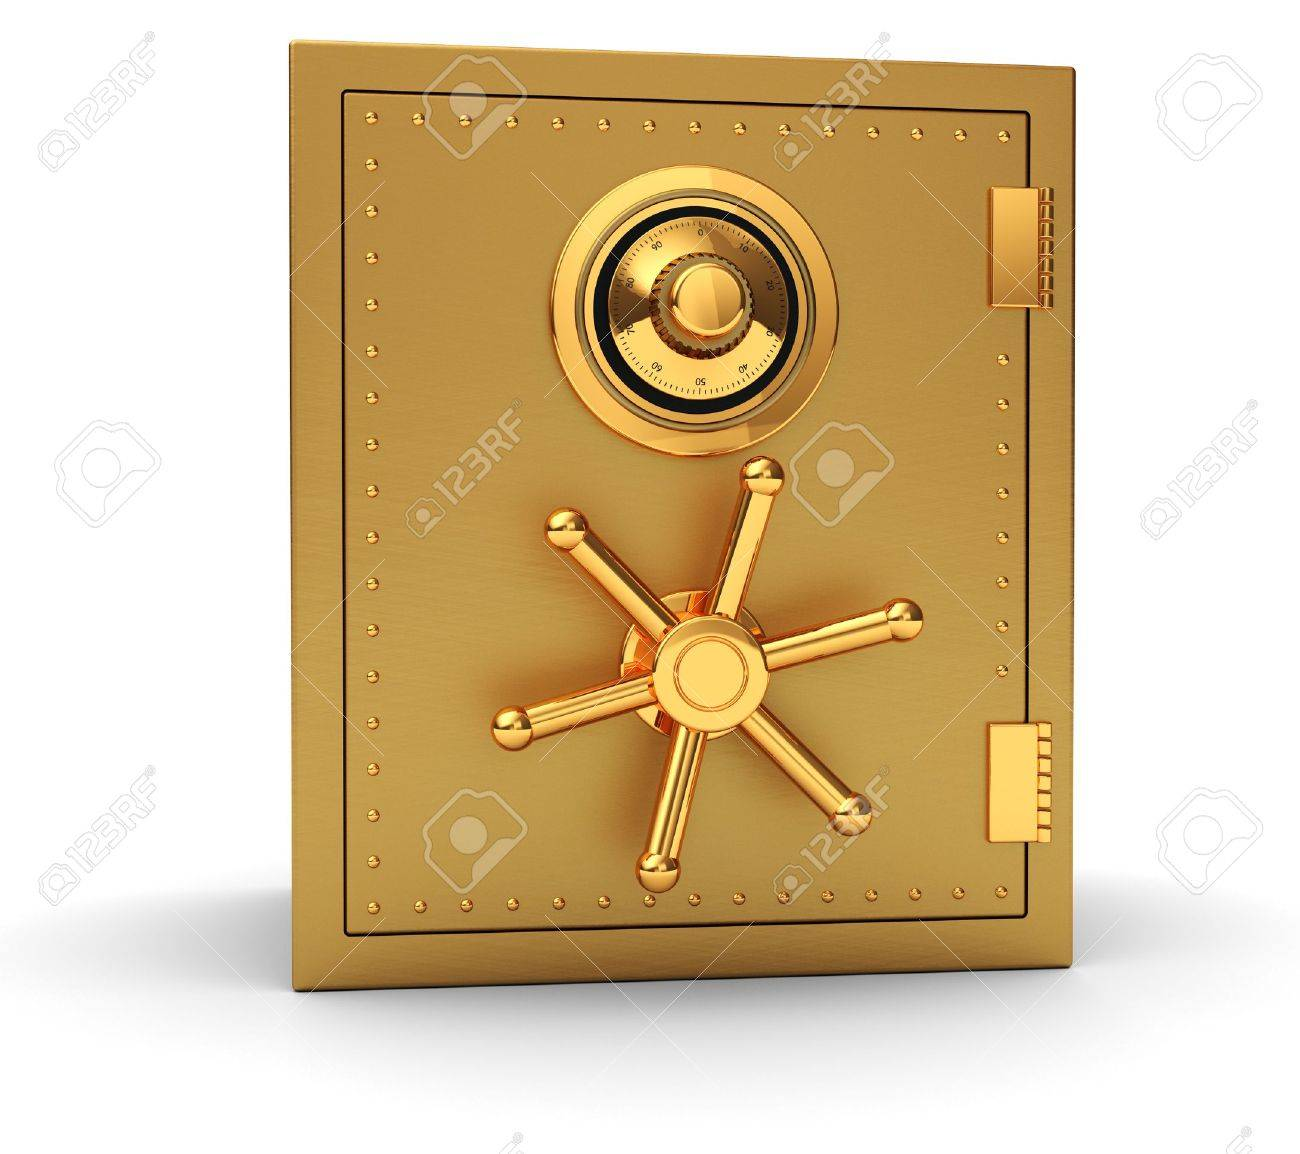 Big golden safe isolated on white background Stock Photo - 14674542